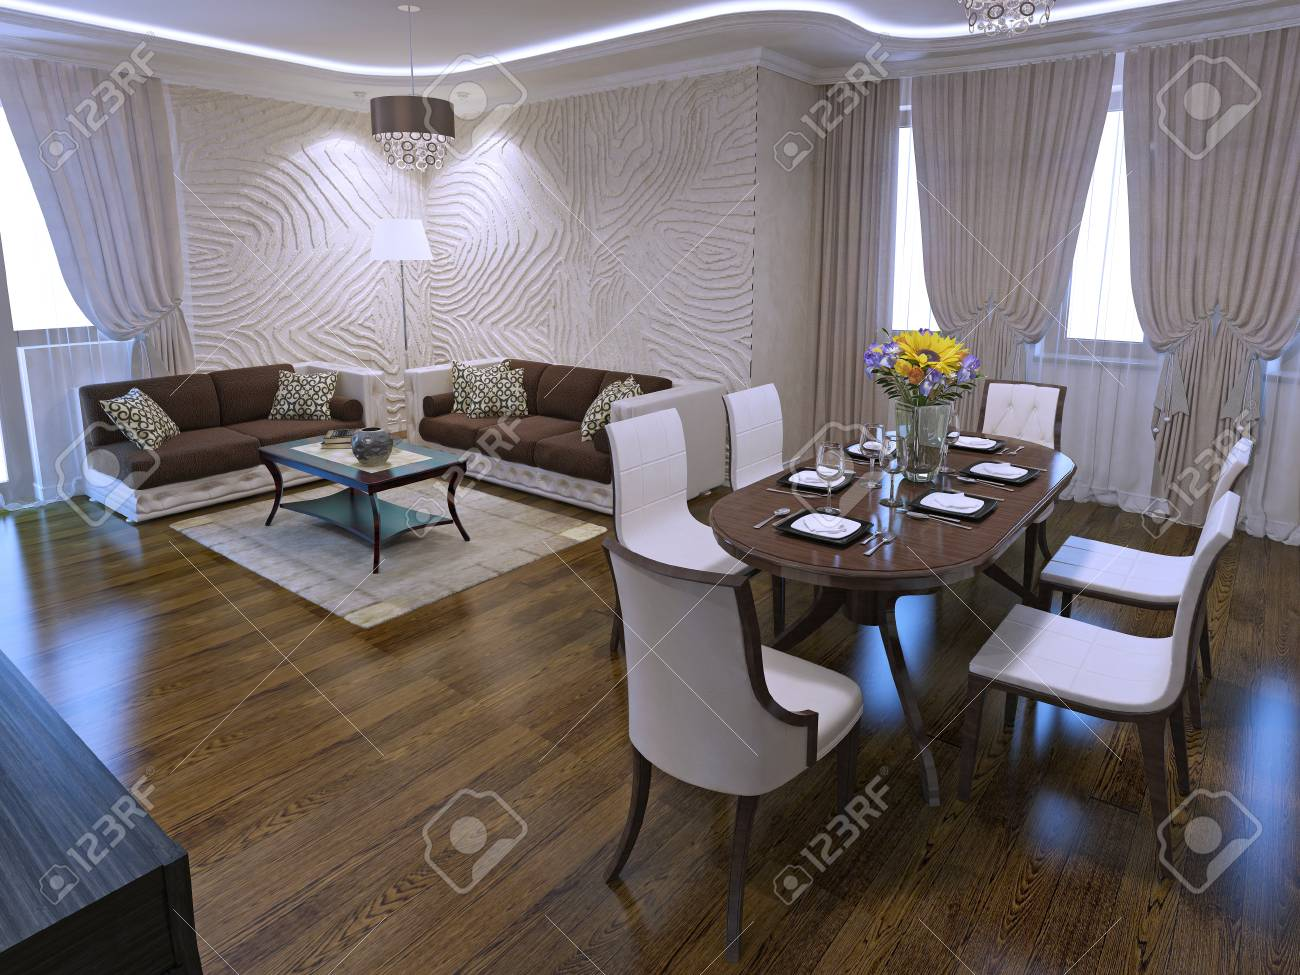 Lounge with dining table in art deco design with included light